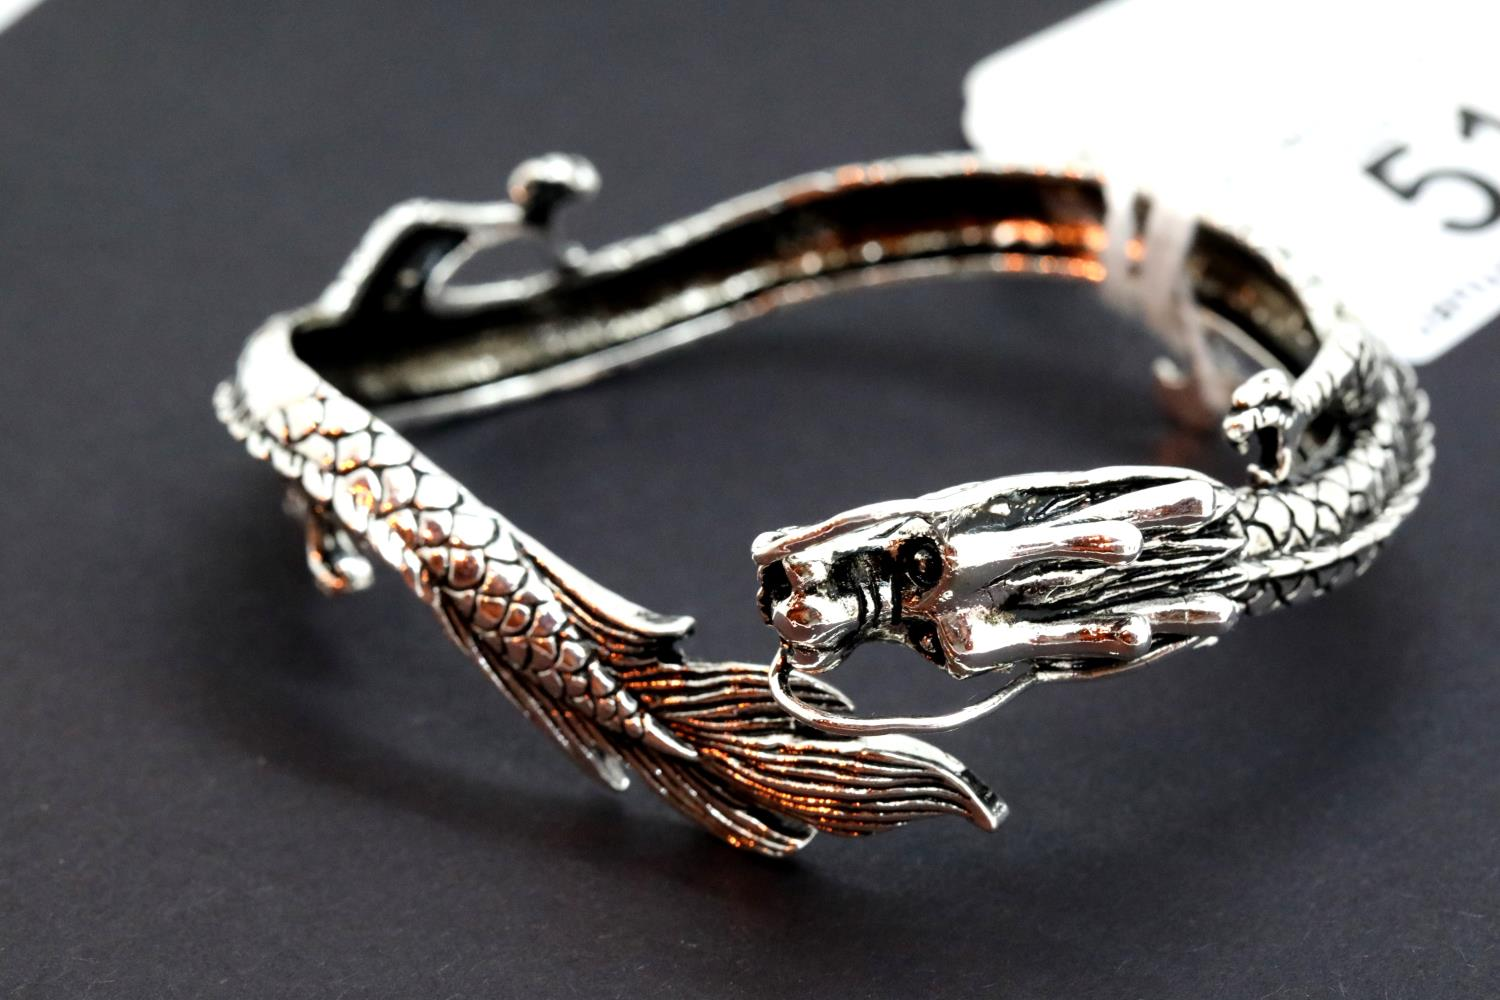 925 silver dragon bangle. P&P Group 1 (£14+VAT for the first lot and £1+VAT for subsequent lots)